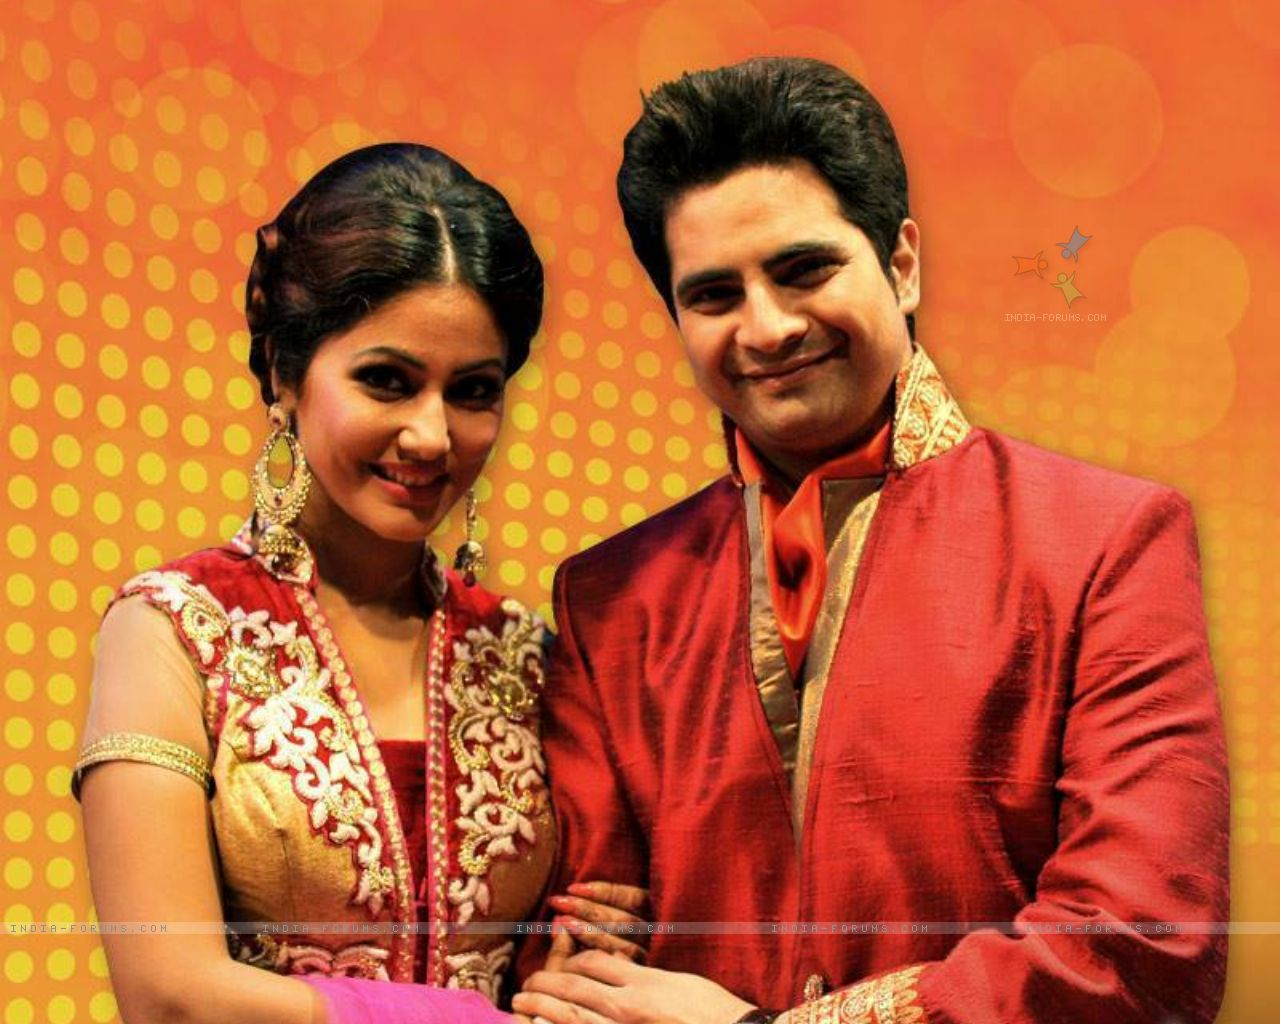 Hina khan and Karan Mehra